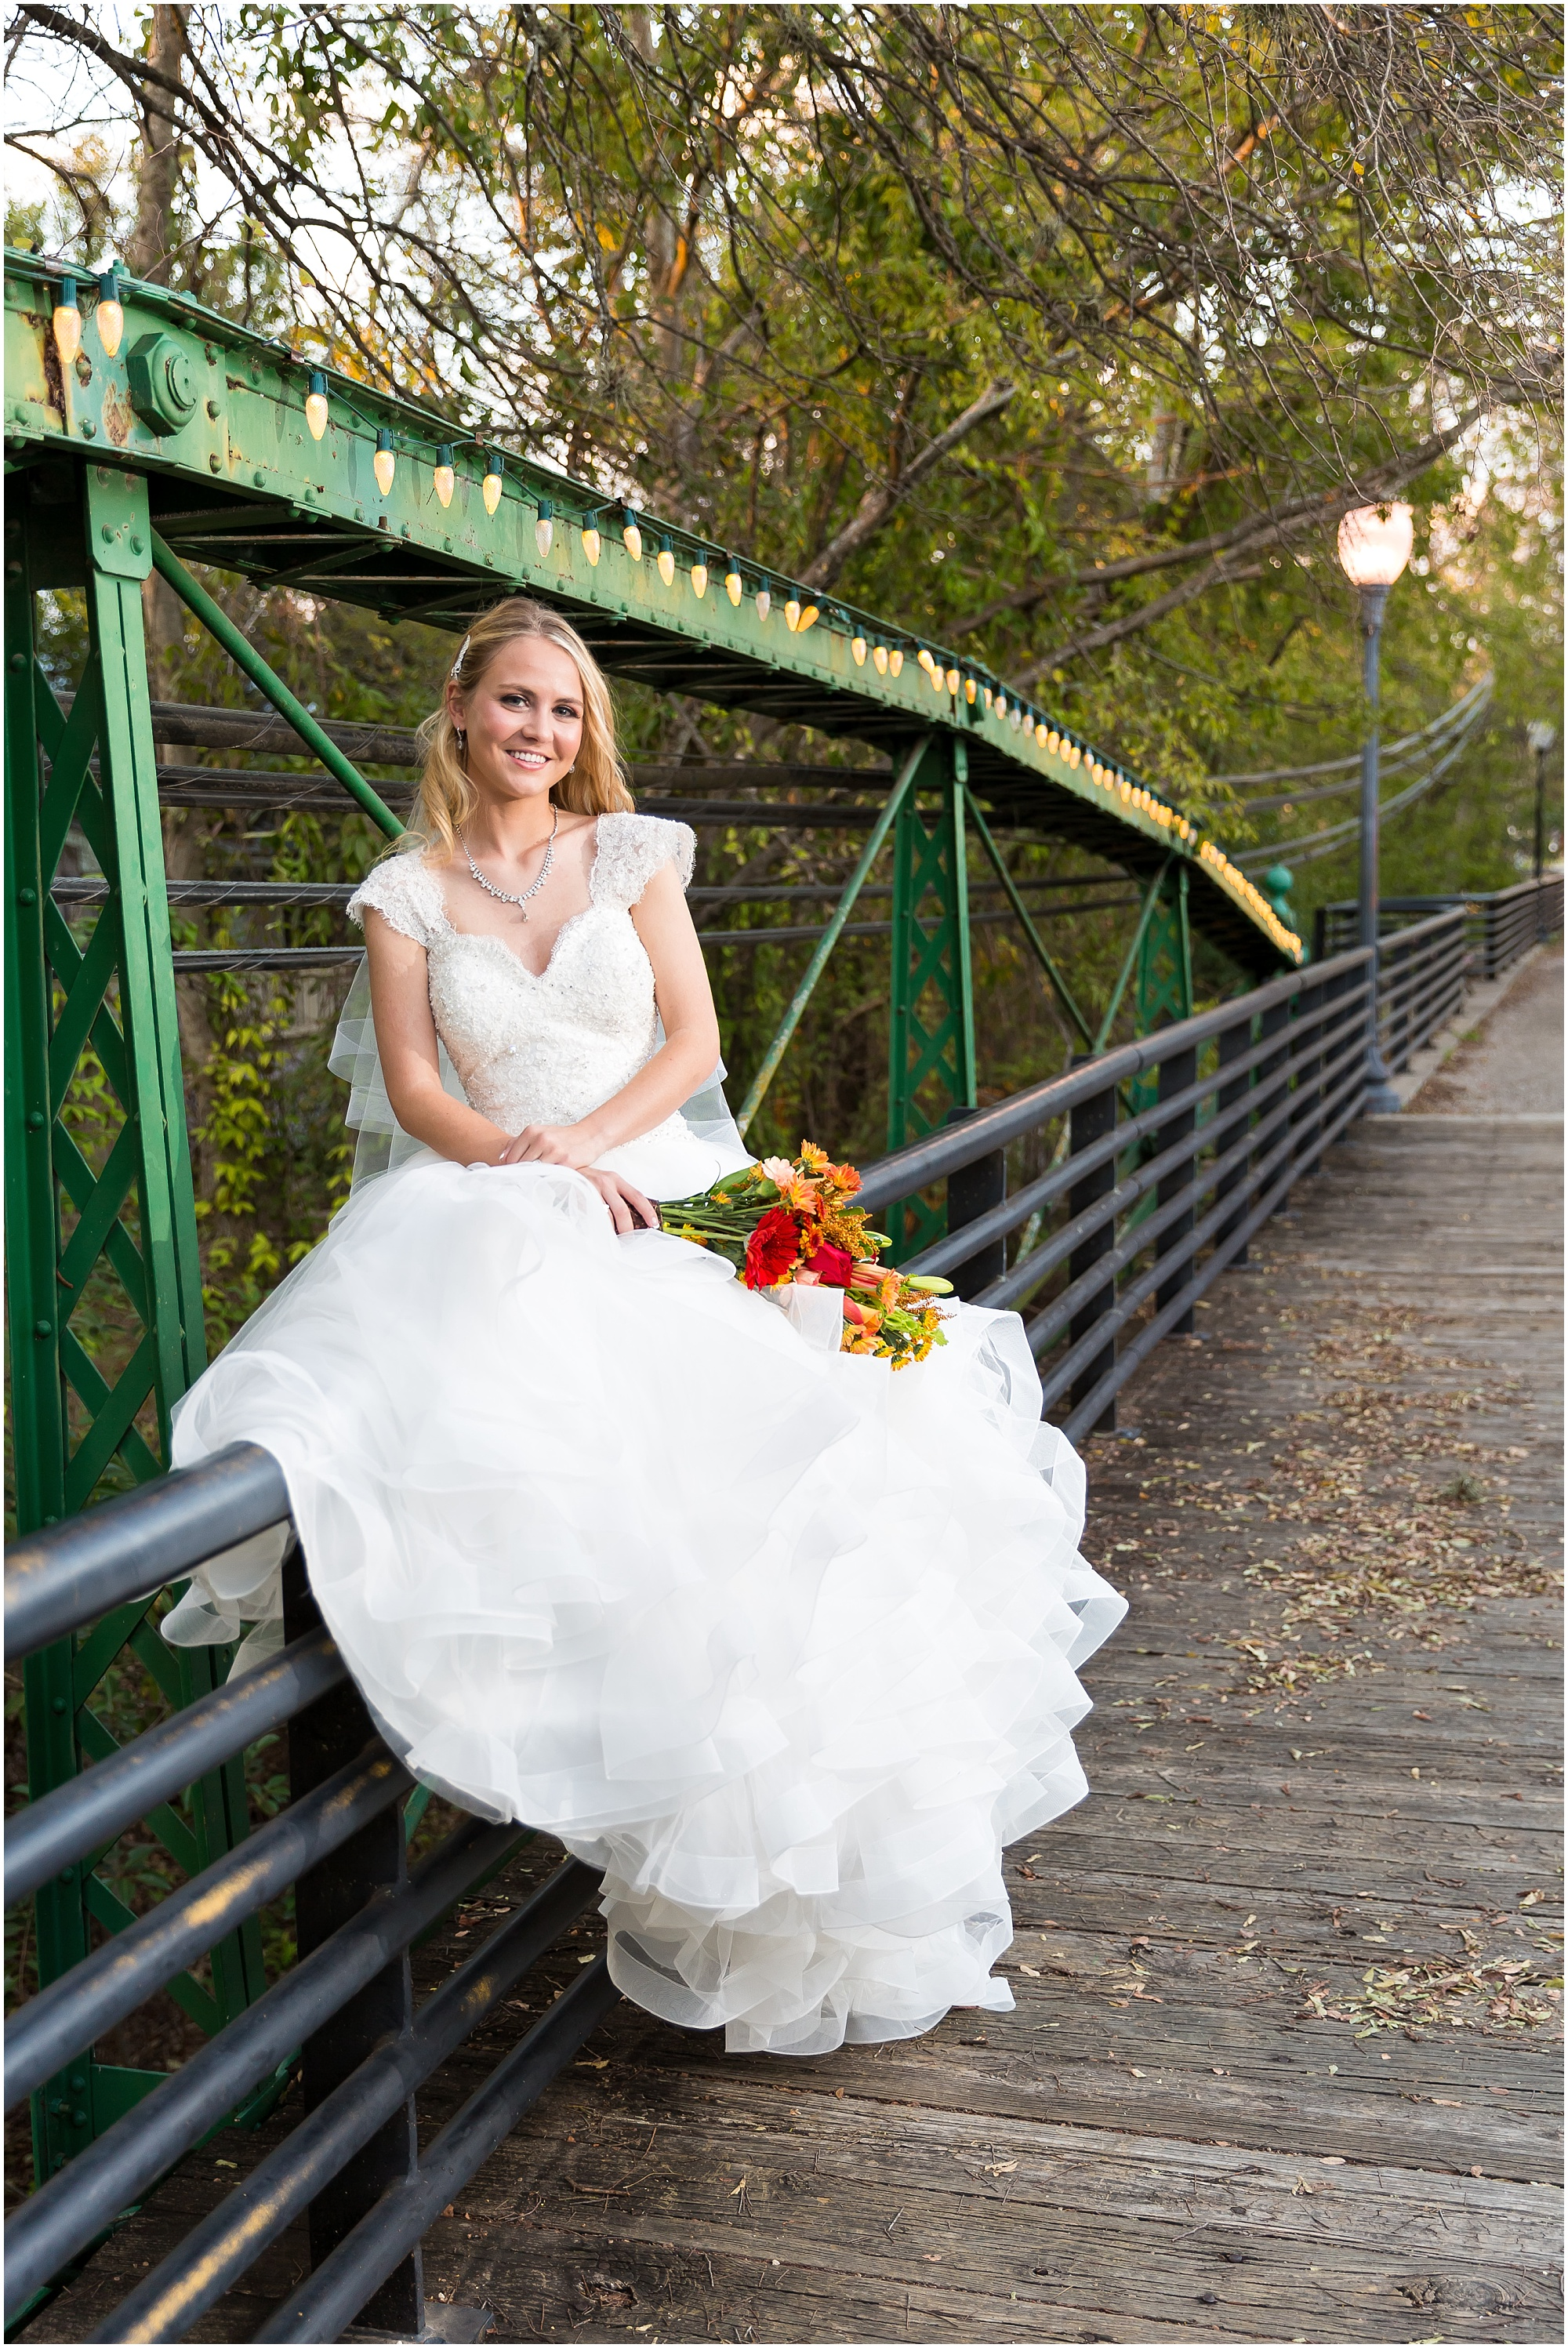 Bridal-Portraits-Salado-Texas_0010.jpg